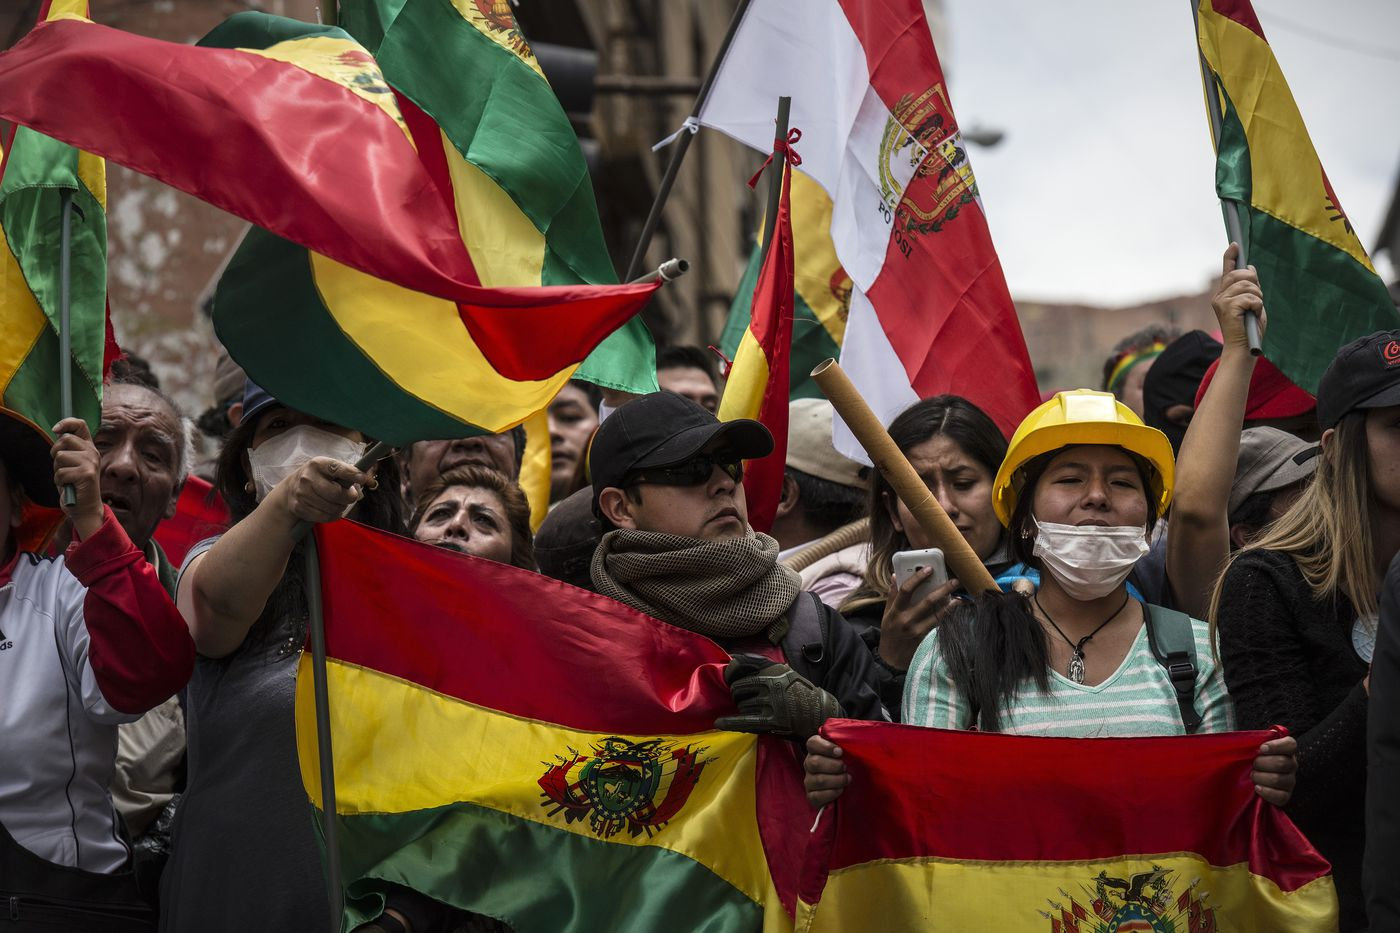 Bot Campaign On Twitter Fuels Confusion About Bolivian Unrest The Verge